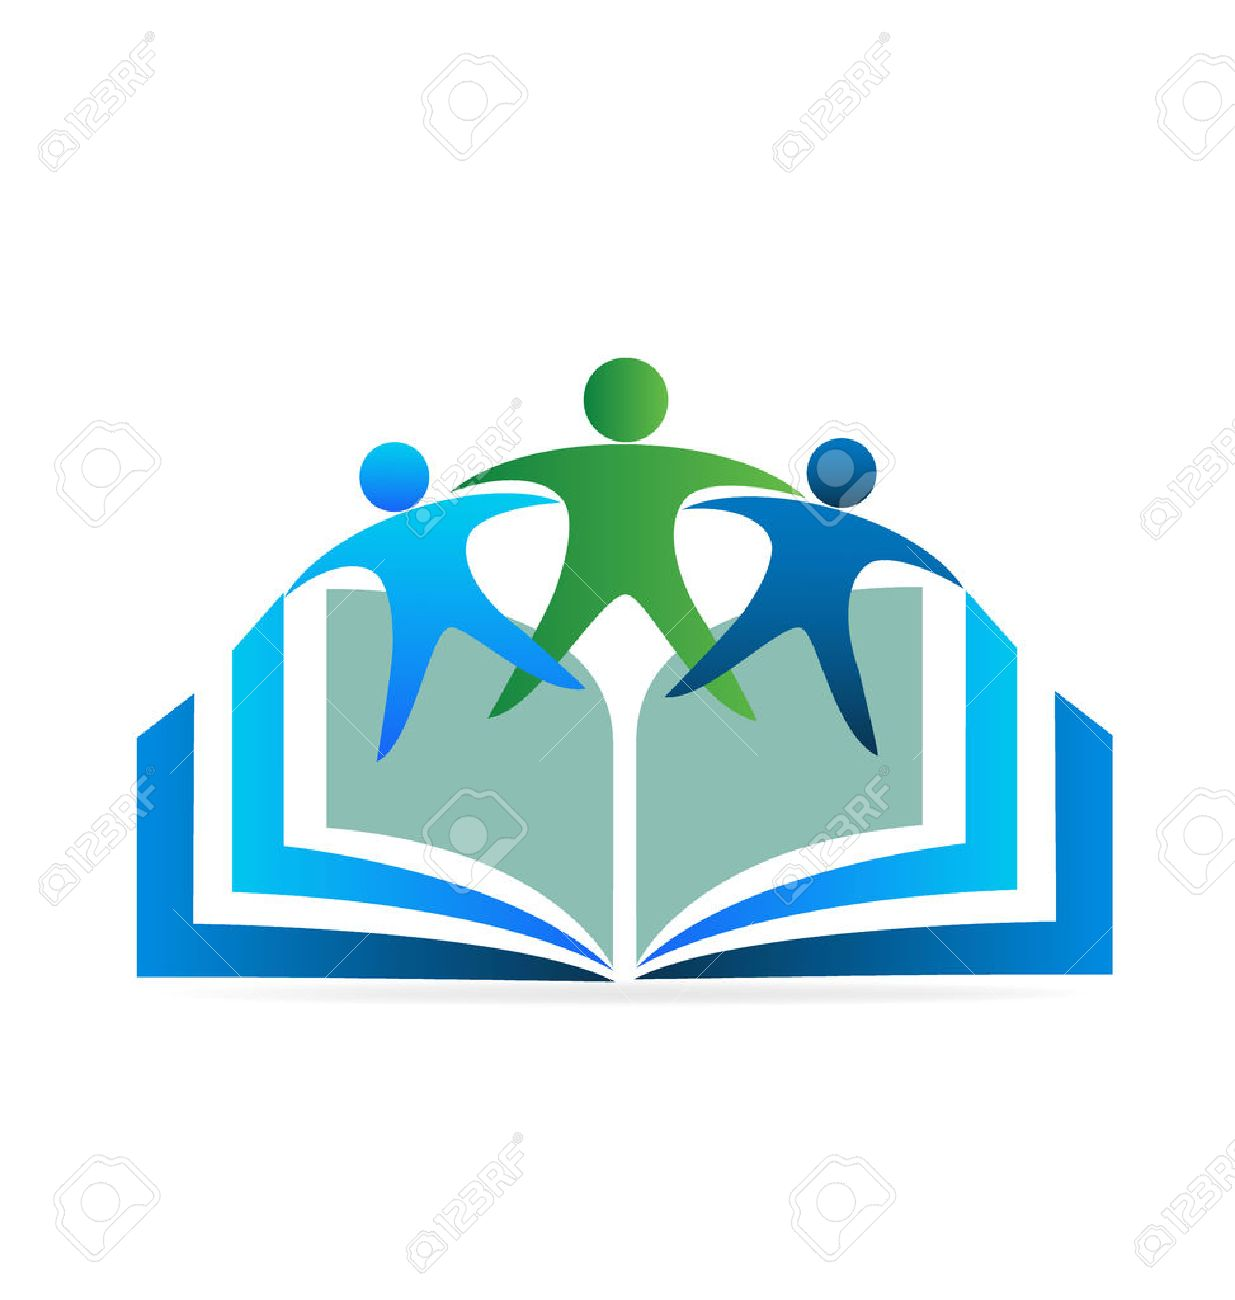 Book and friends education logo - 55848425